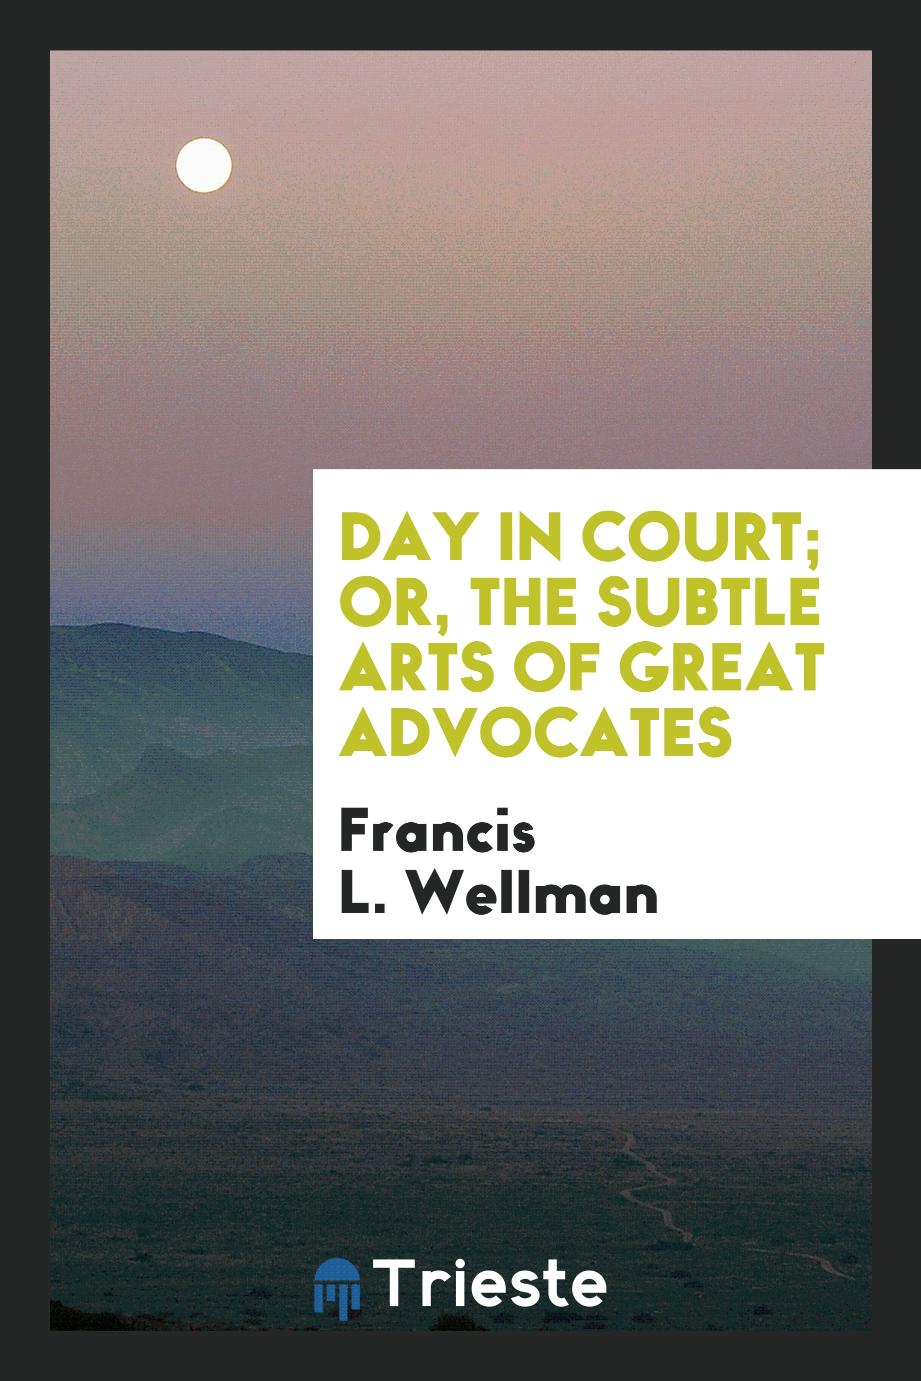 Francis L. Wellman - Day in Court; Or, The Subtle Arts of Great Advocates